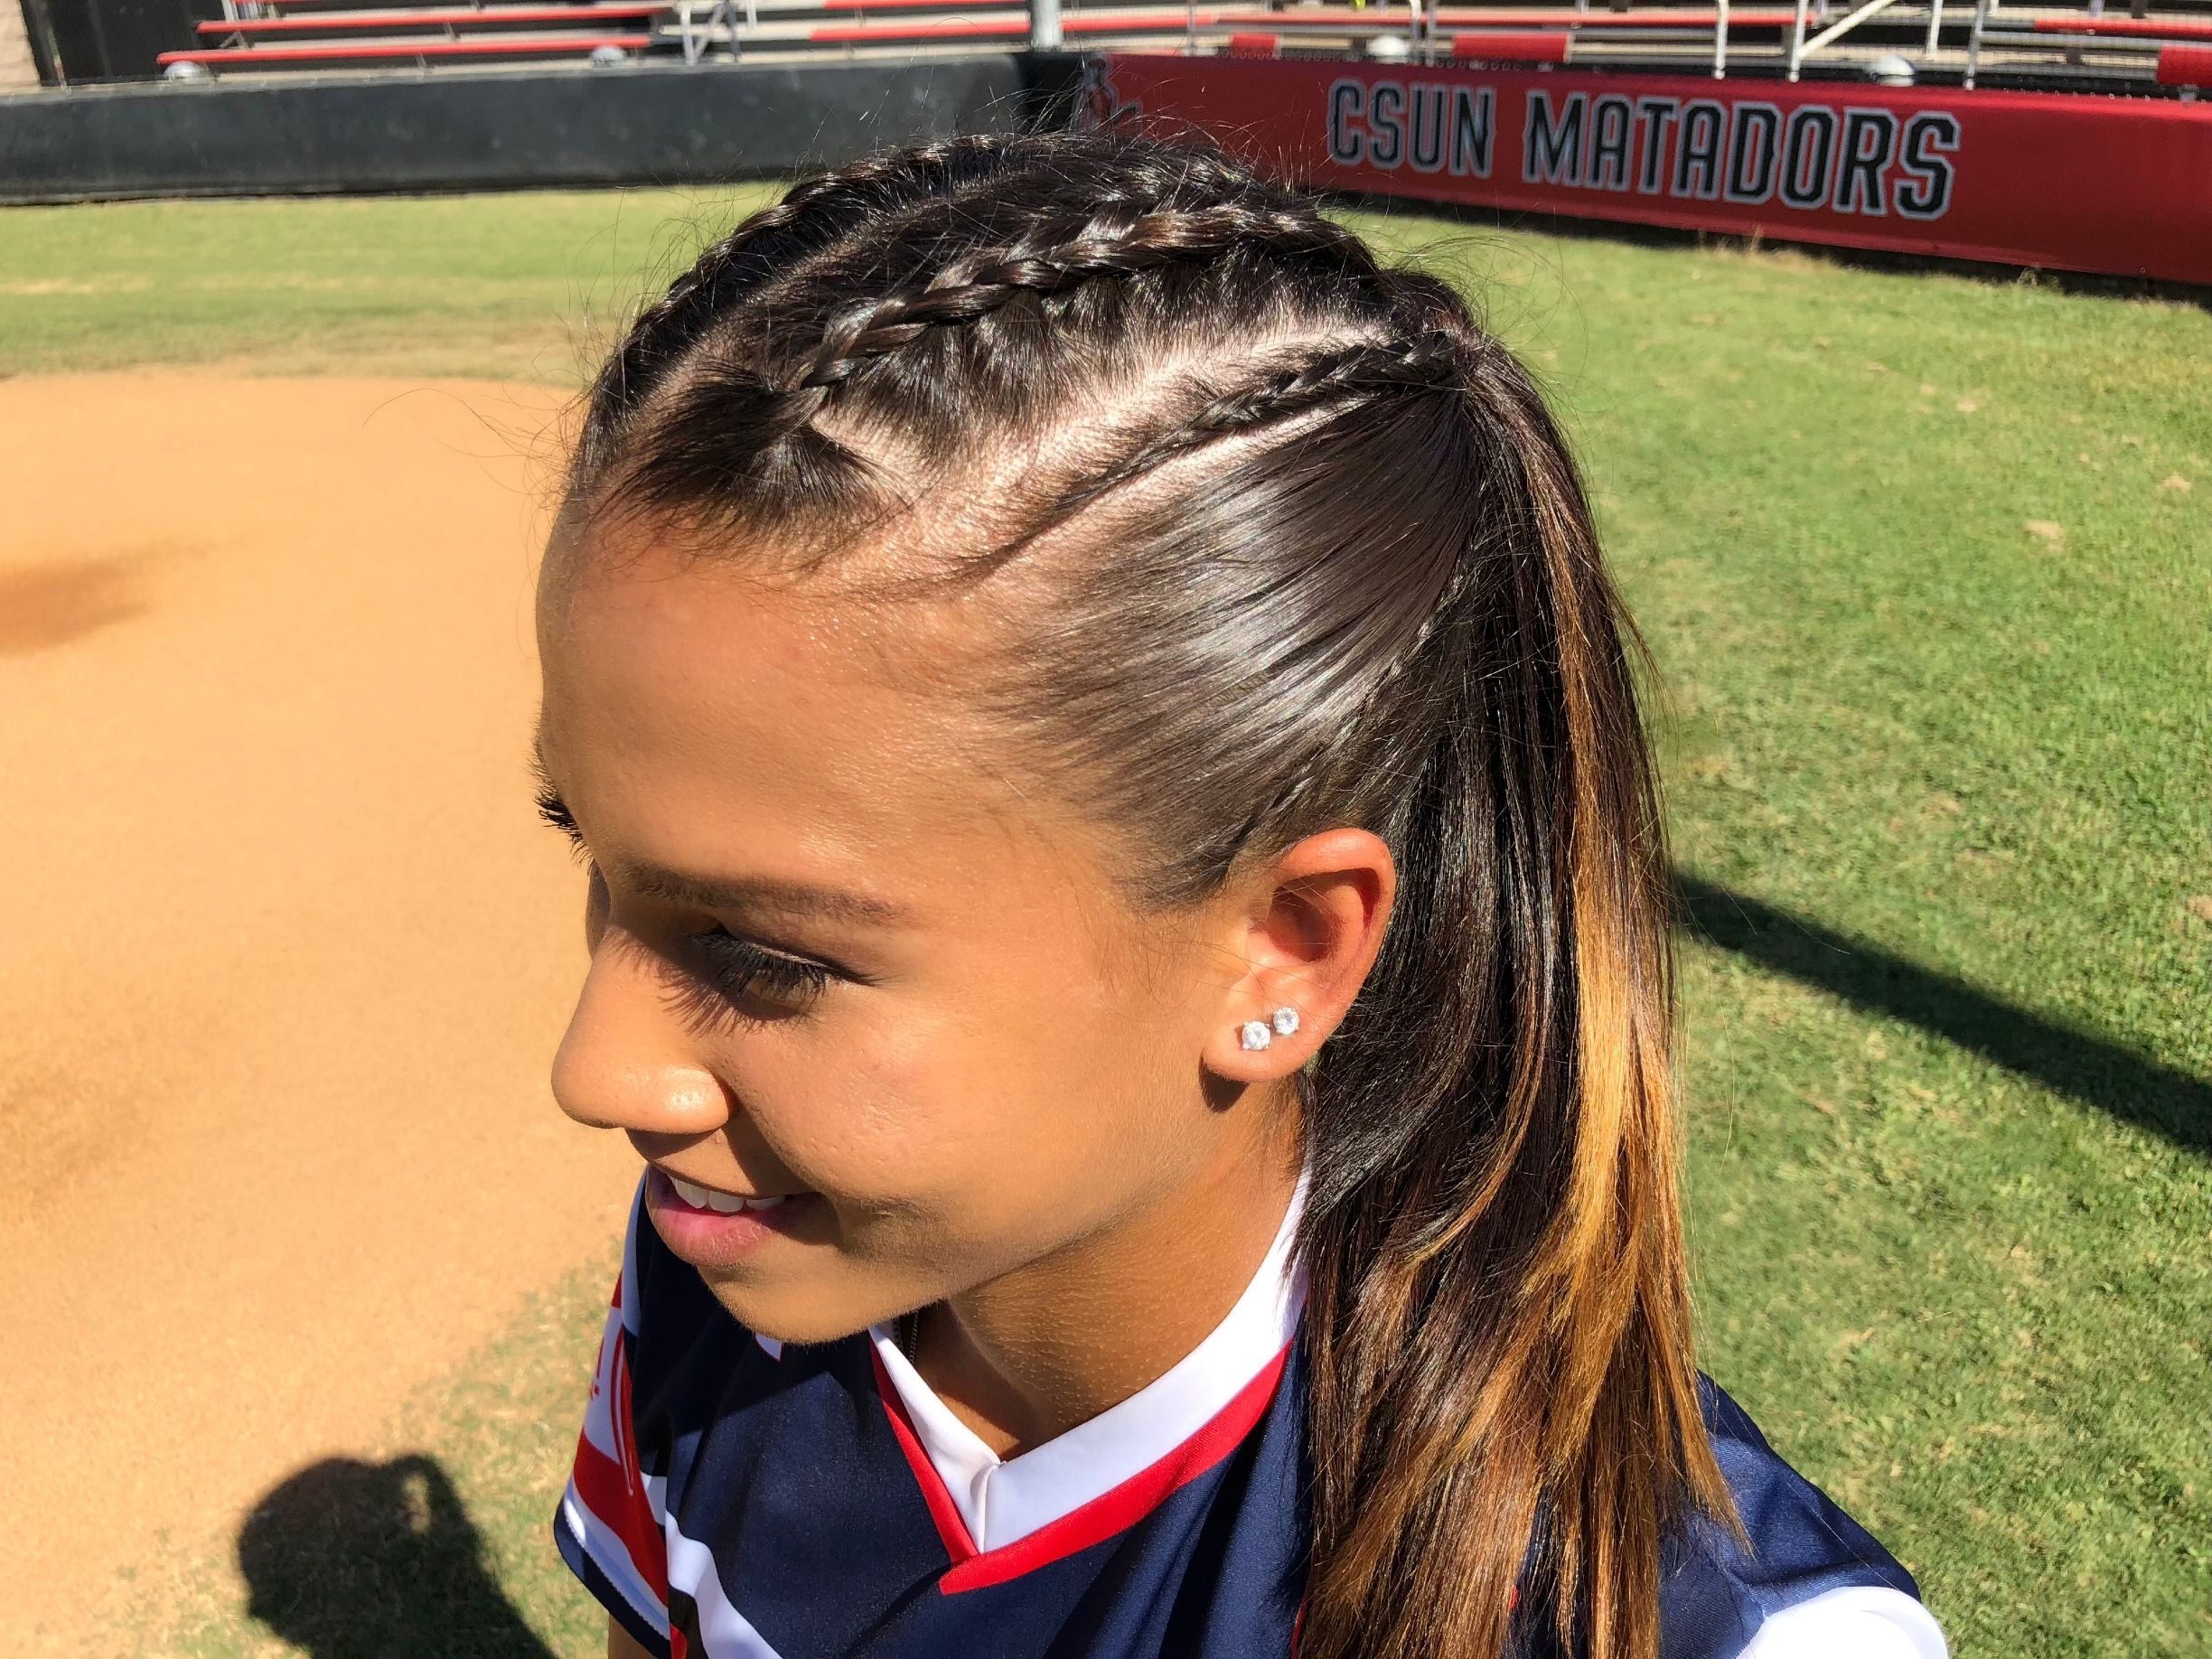 Softball Hairstyle Braids Athletic Hairstyles Sports Hairstyles Softball Hairstyles